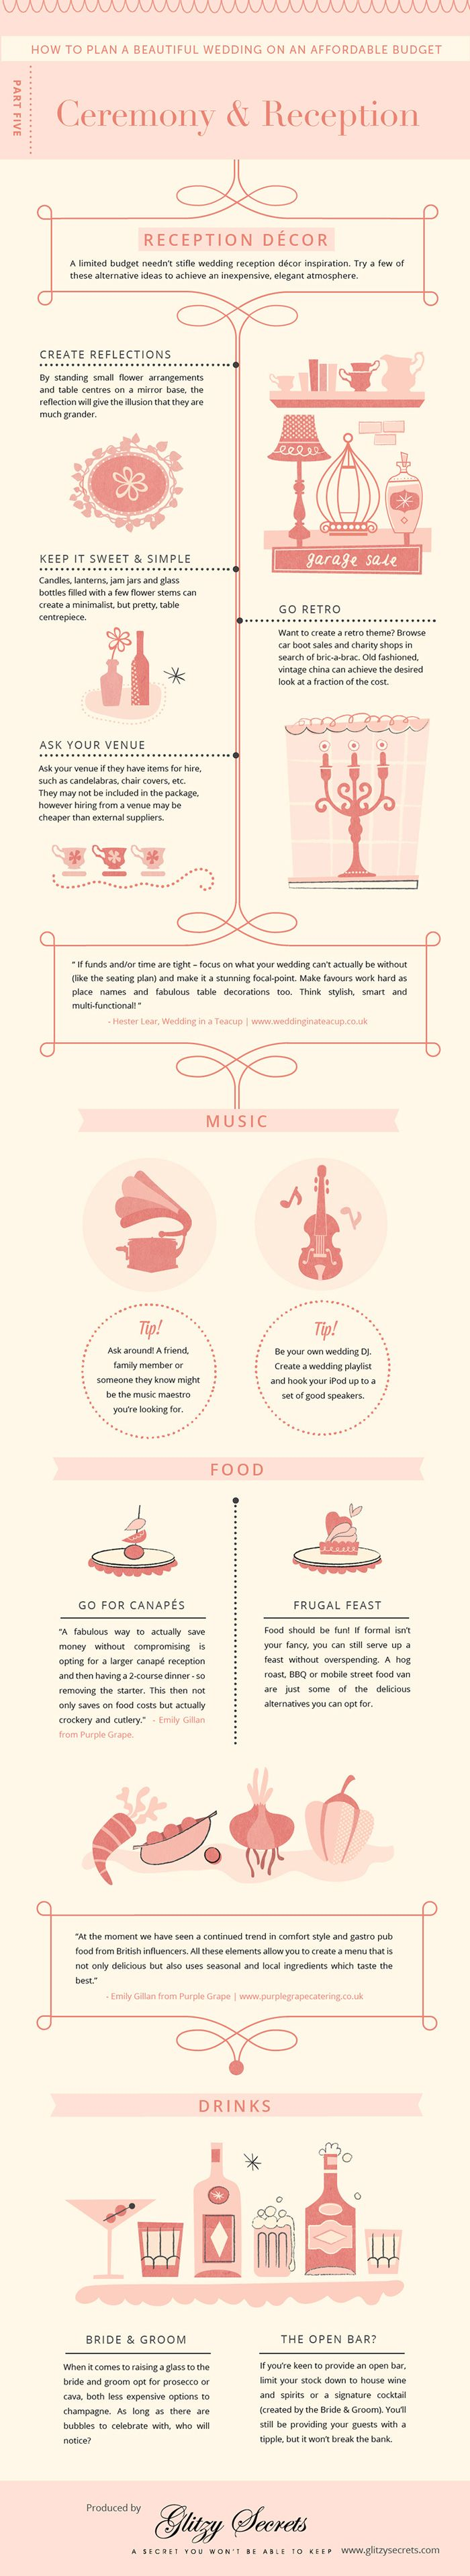 87 Best Wedding Wisdom Images On Pinterest Bride The Bride And